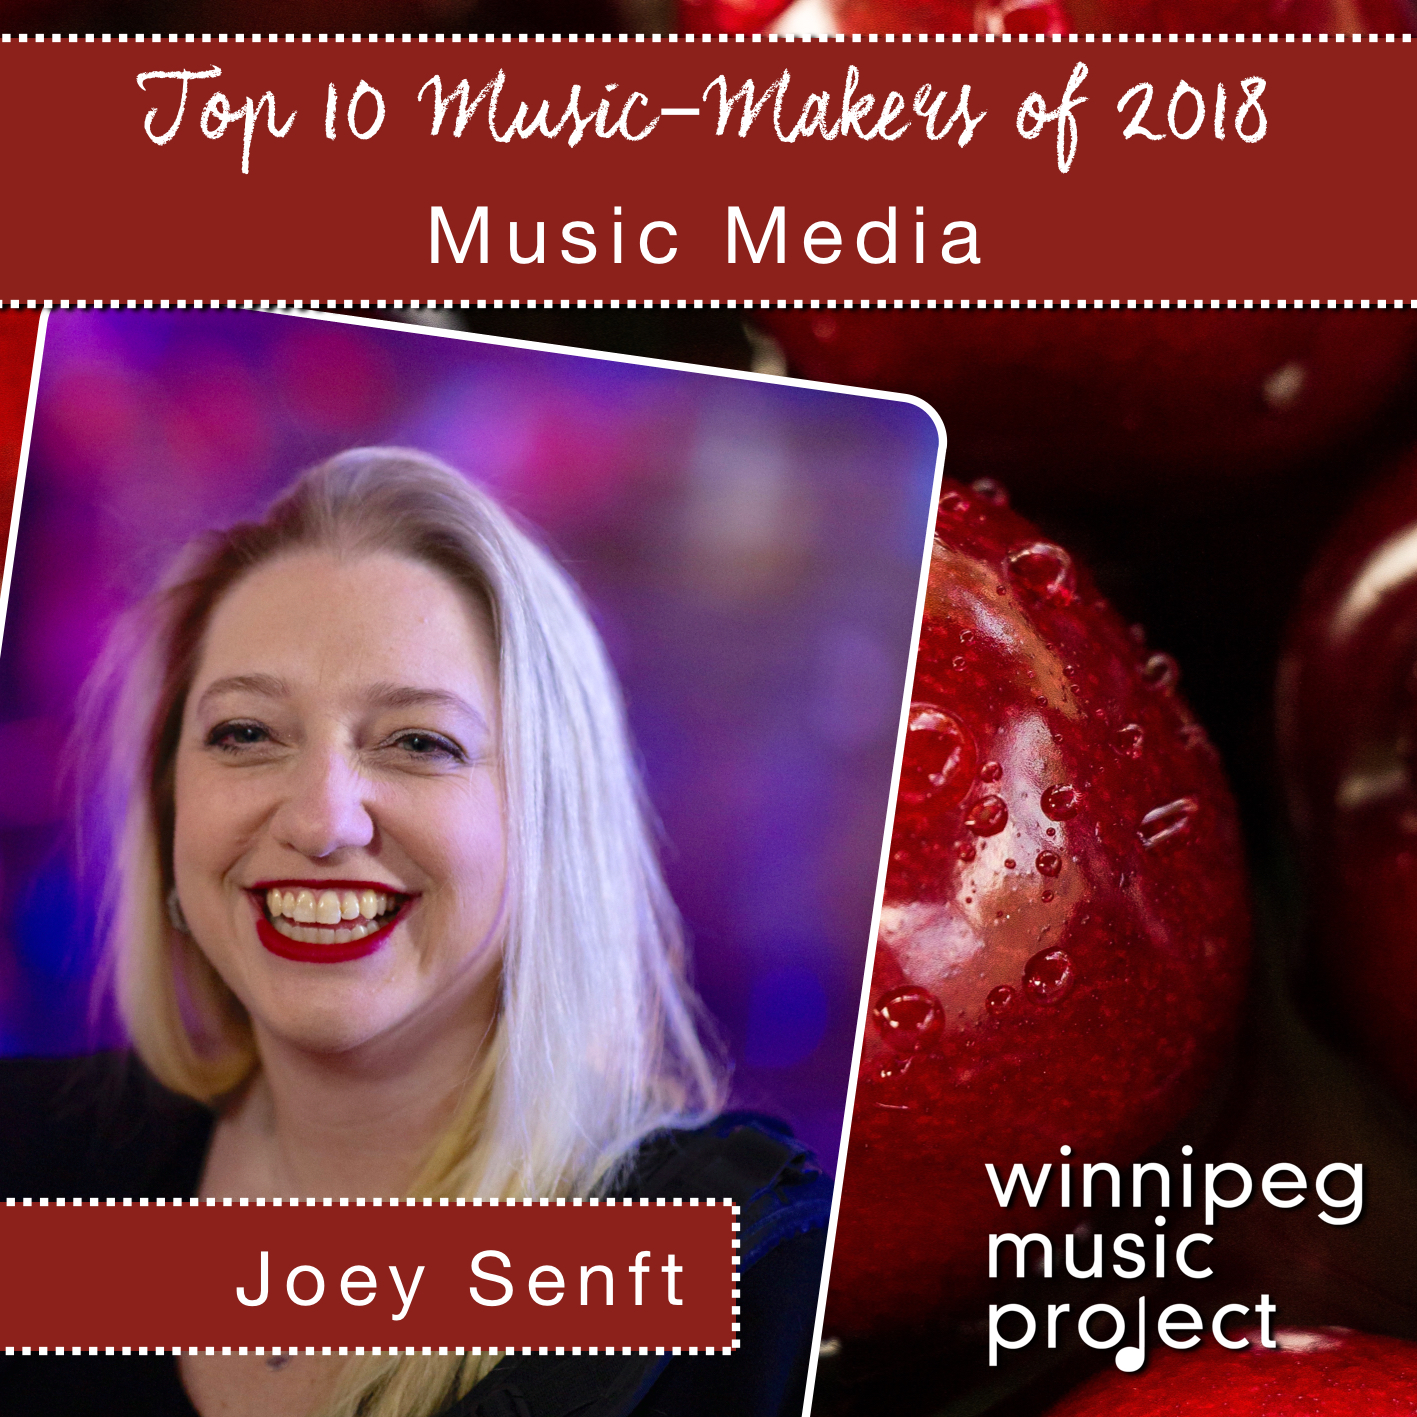 Joey Senft | Top 10 Music- Makers of 2018 | Winnipeg Music Project